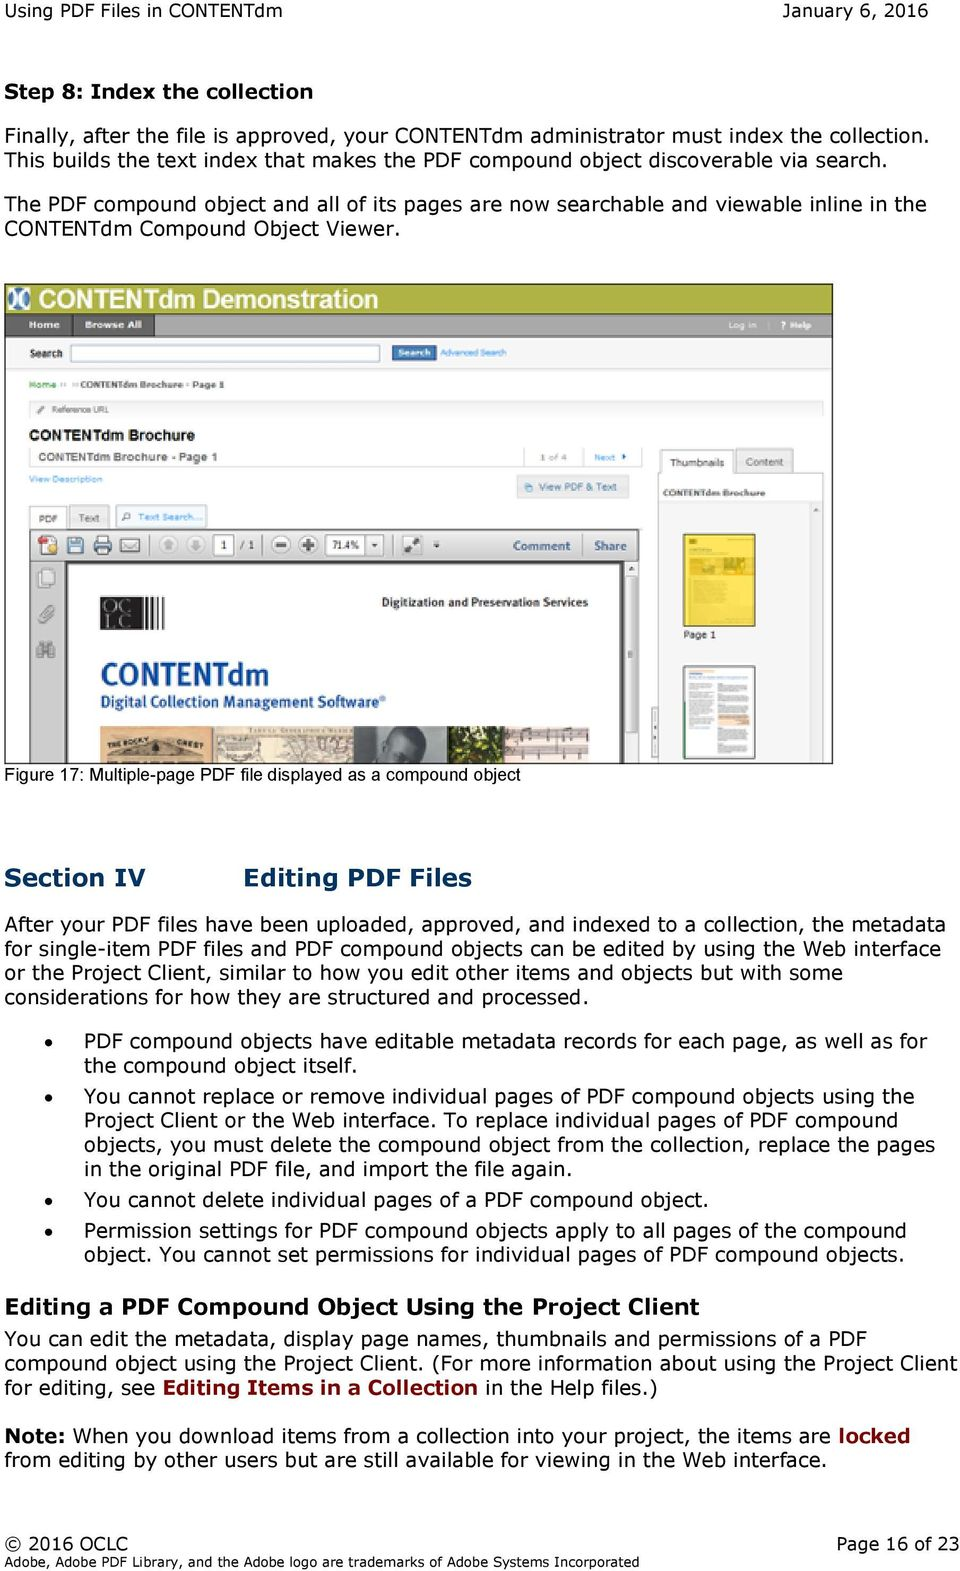 The PDF compound object and all of its pages are now searchable and viewable inline in the CONTENTdm Compound Object Viewer.